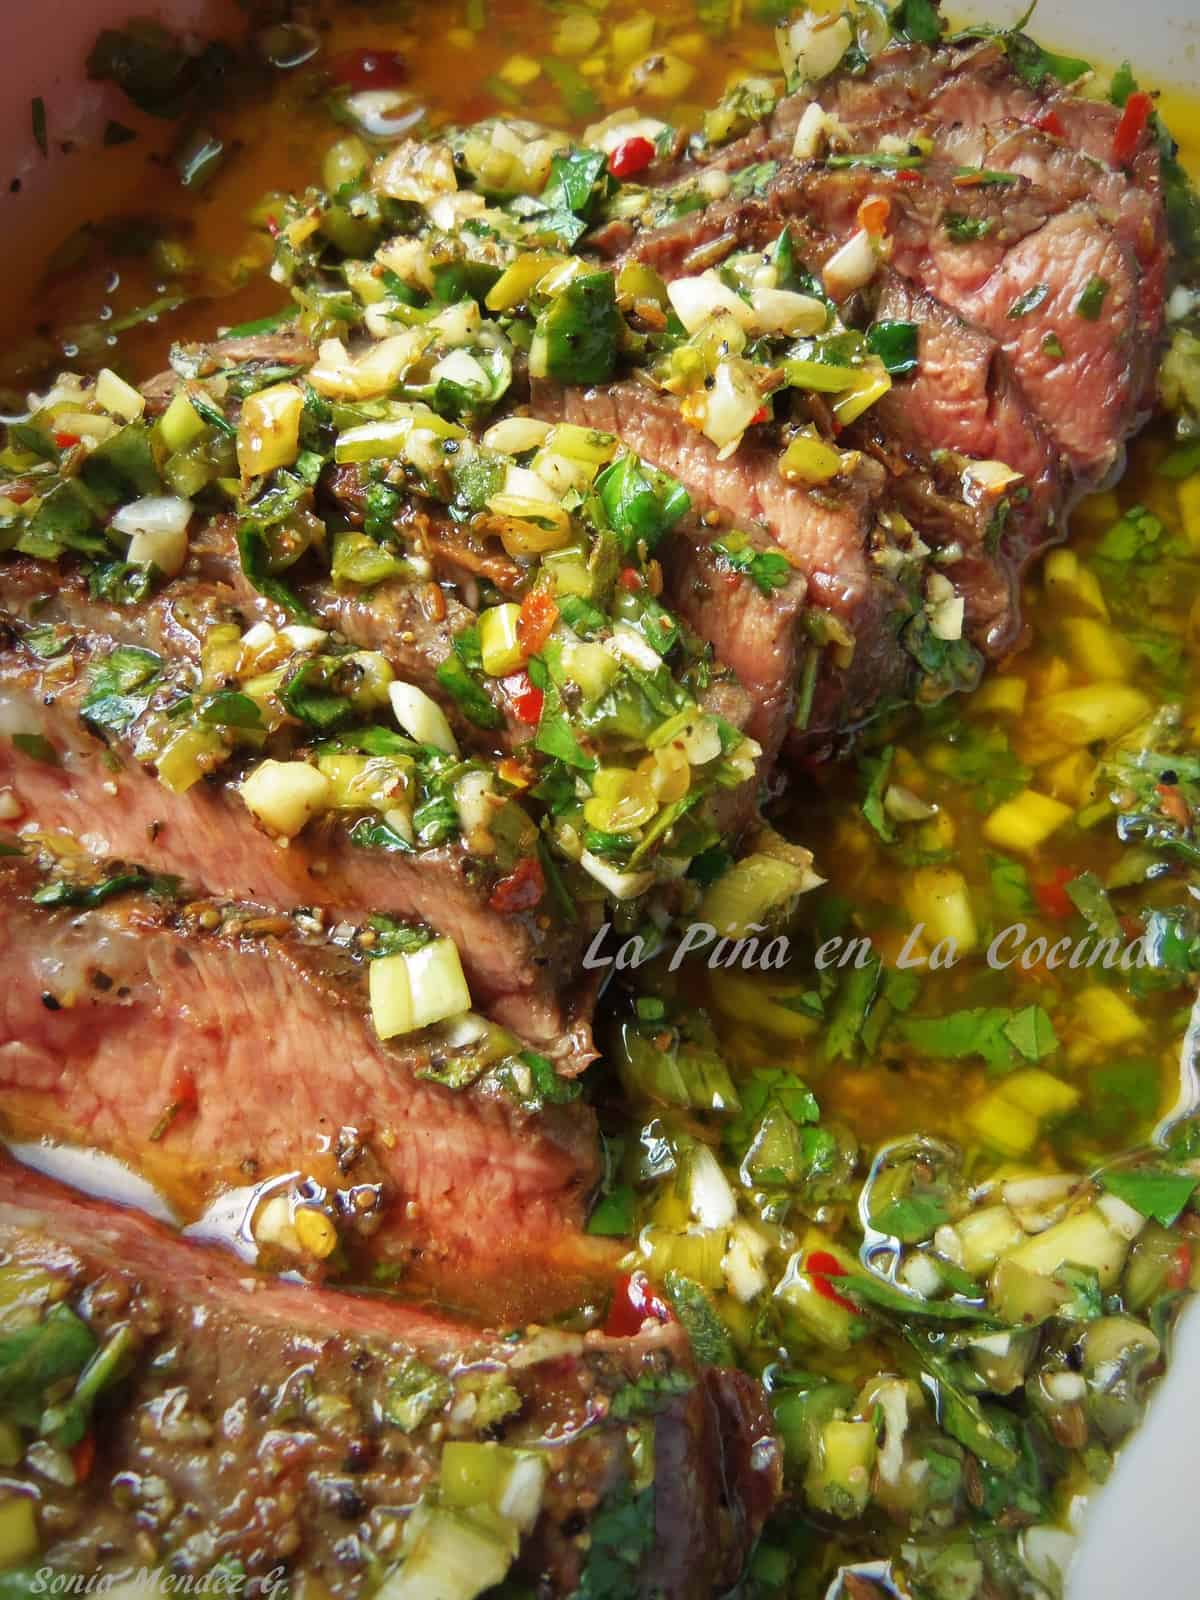 Reverse marinated grilled chimichurri steak